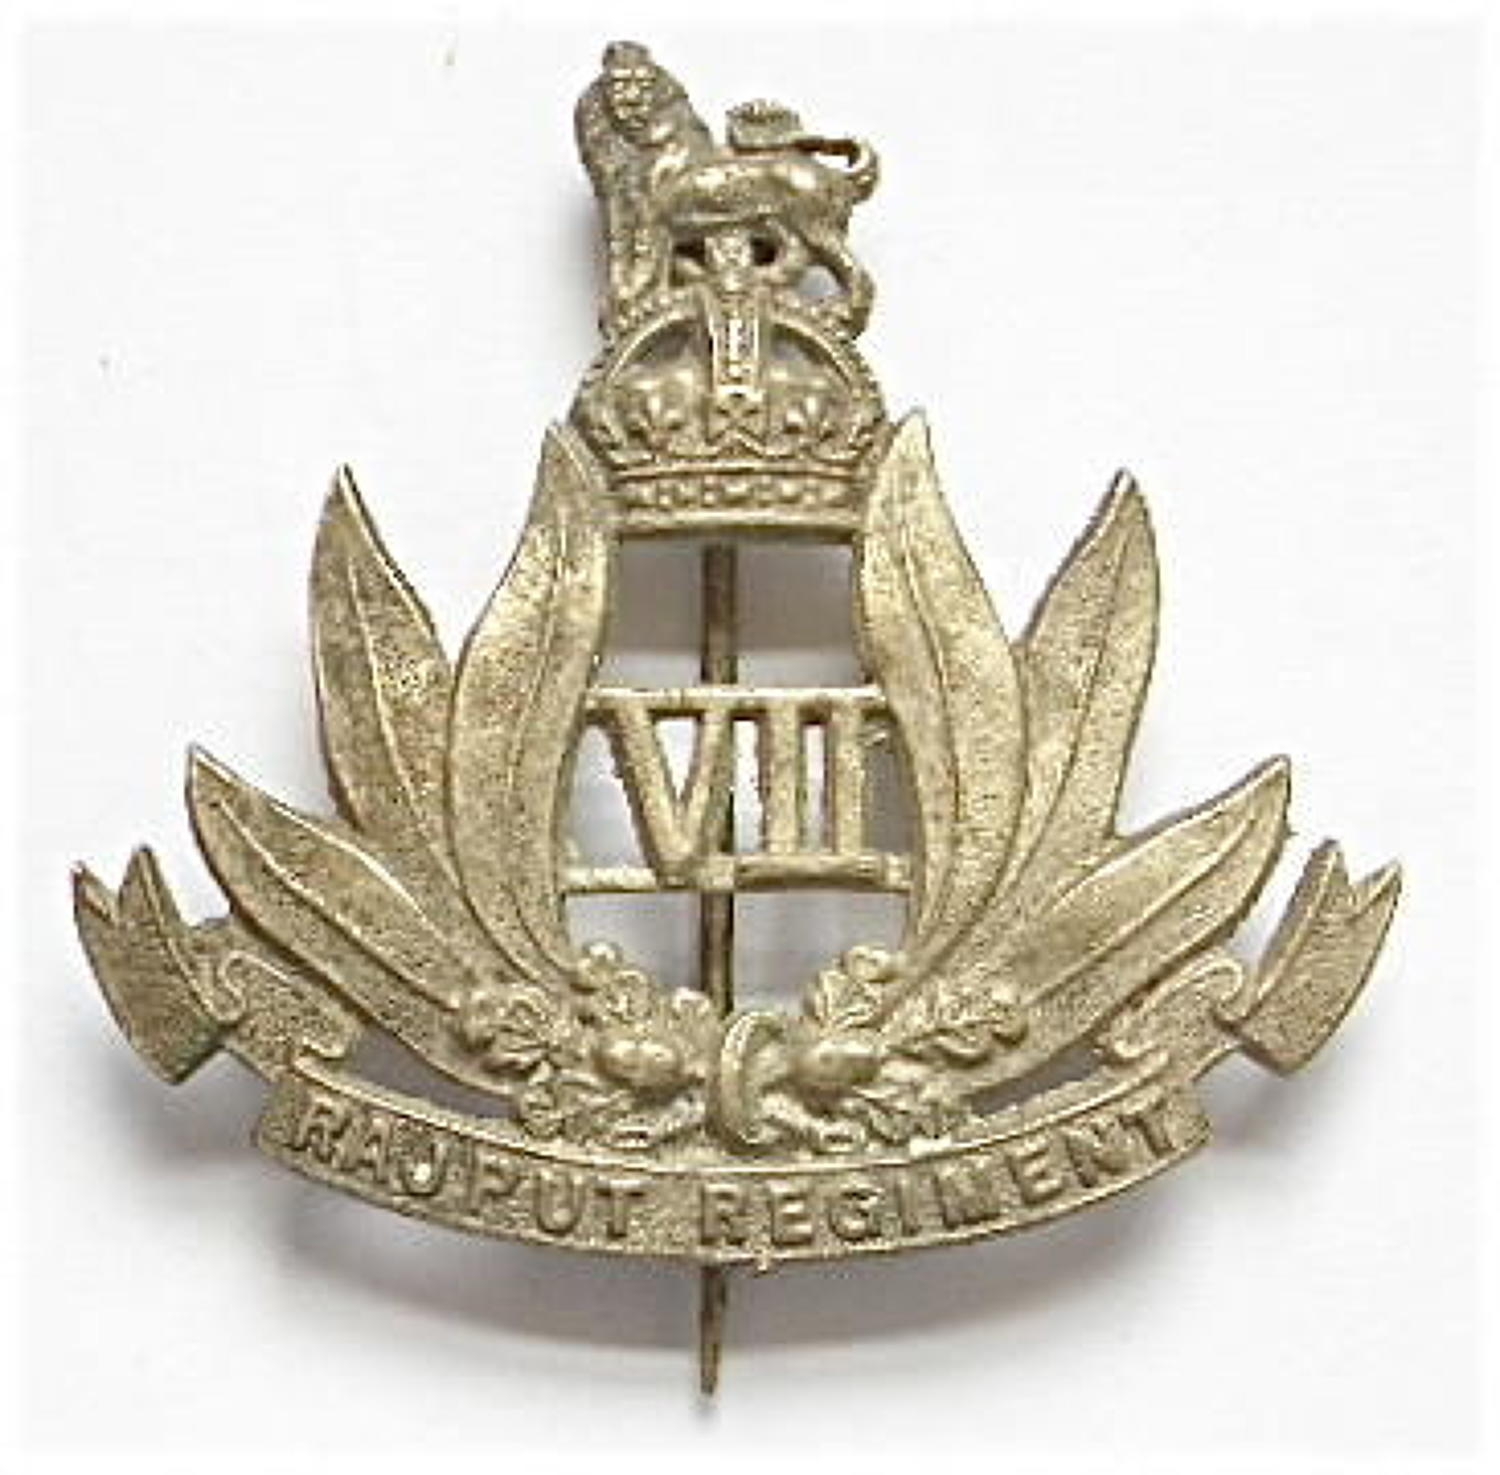 Indian Army. 7th Rajput Regiment post 1922 well cast white metal pagri